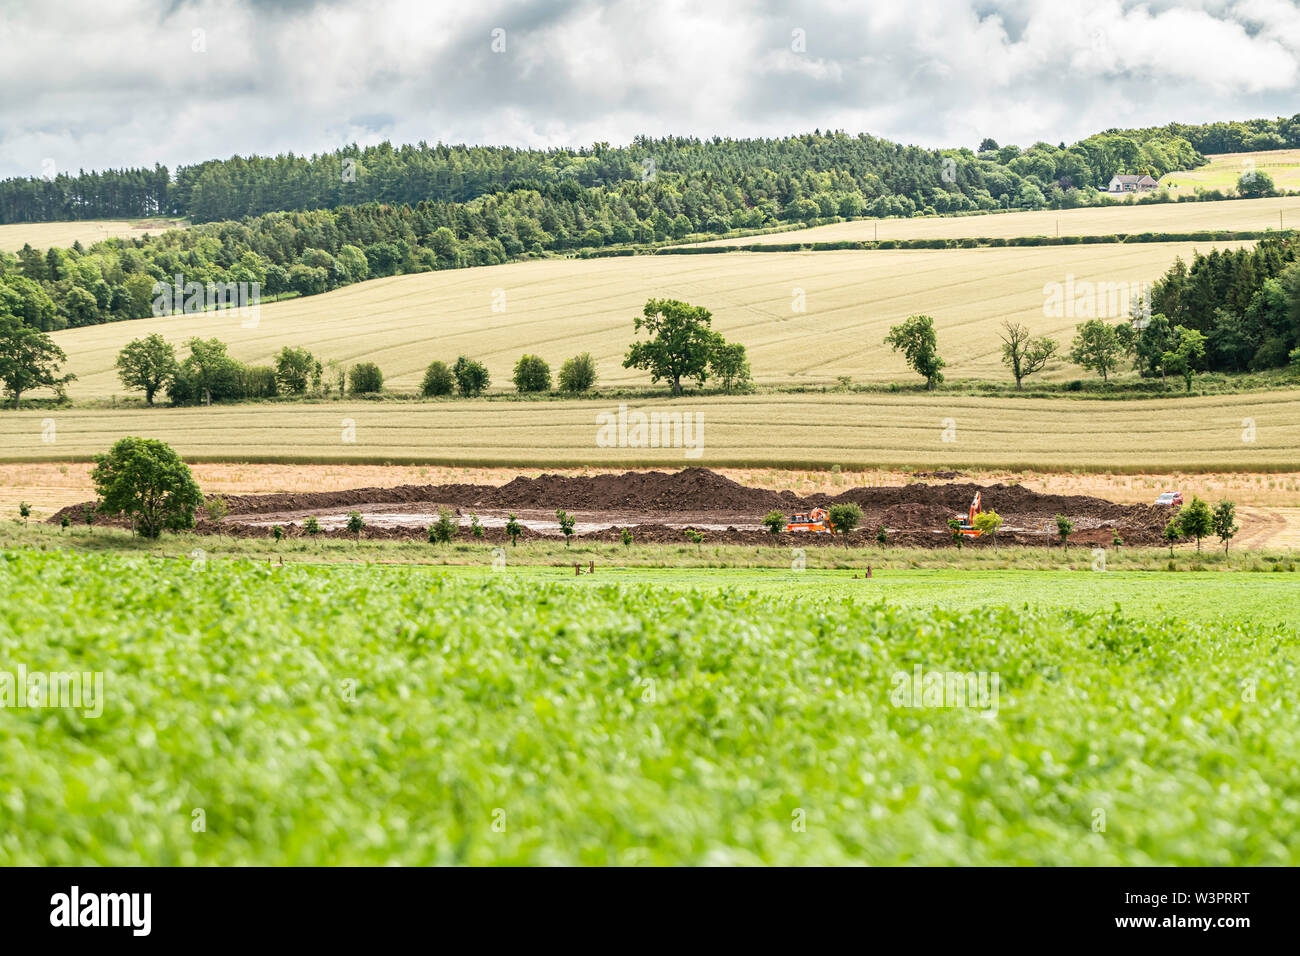 Ancrum, Jedburgh, Scottish Borders, UK. 11th July 2019. A pond being dug on arable farmland in the Scottish Borders. - Stock Image